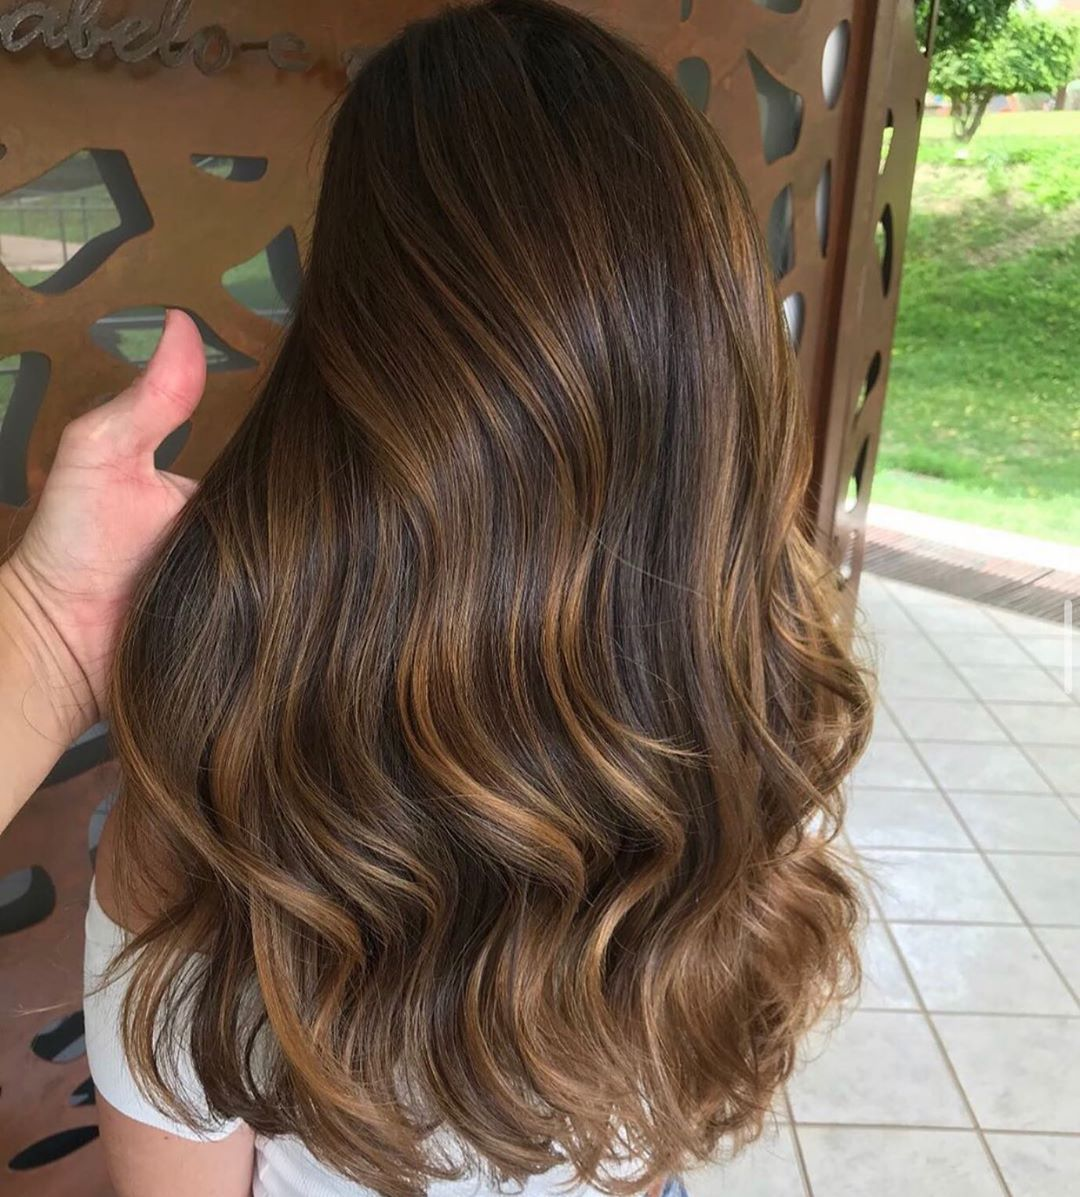 """Brown Auburn Balayage Human Hair Lace Front Ombré Wig 24"""" Wavy Hair"""